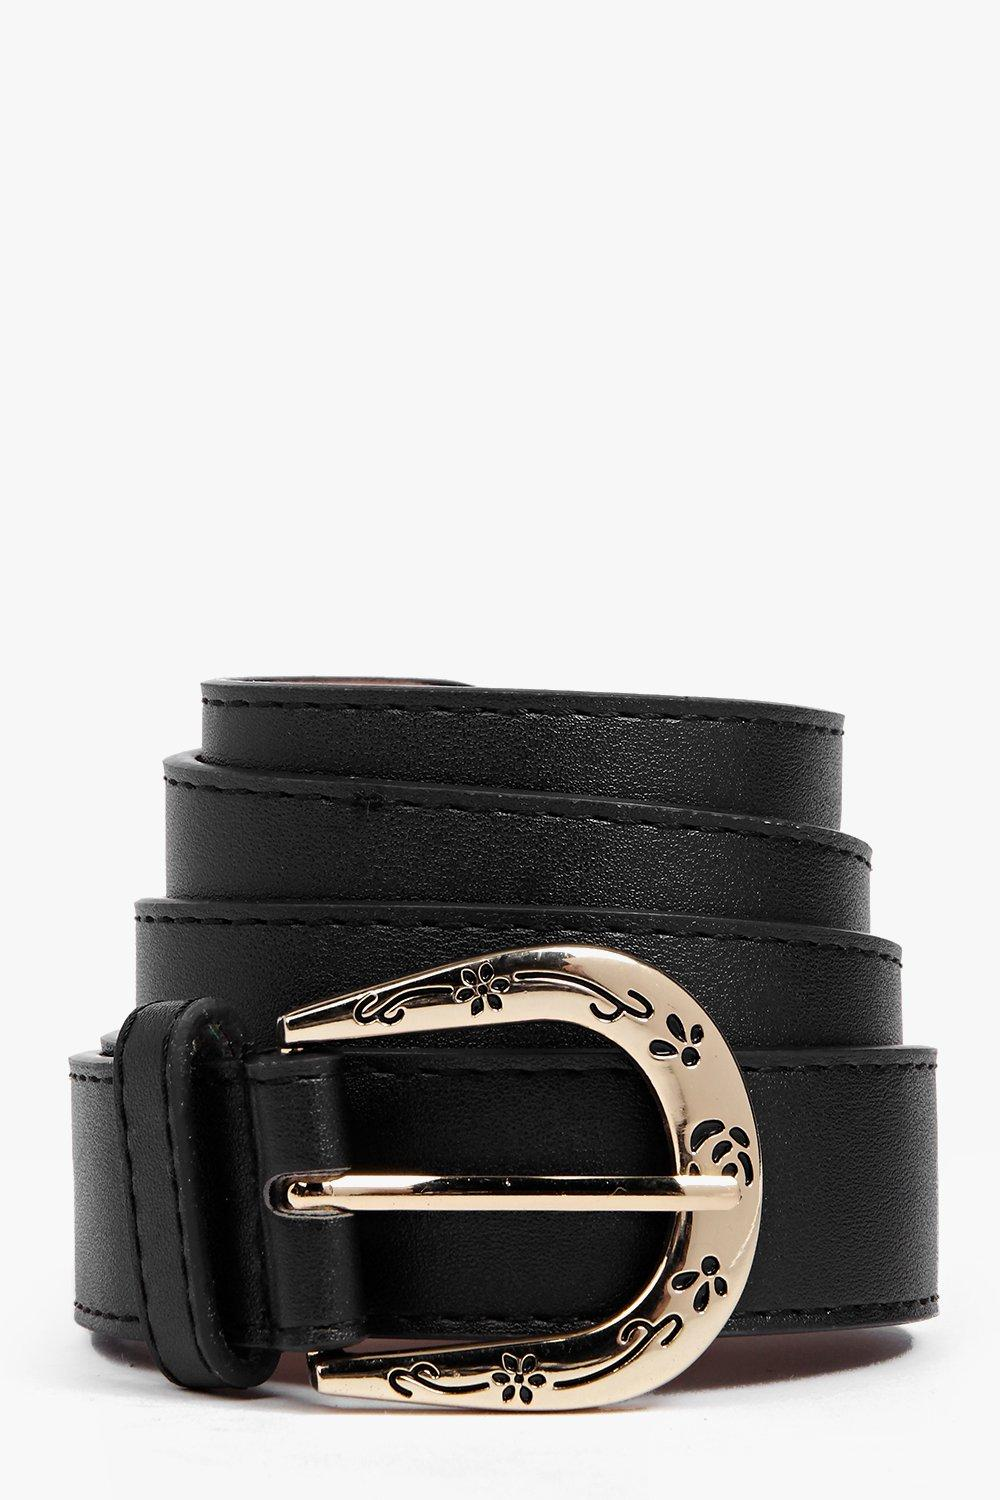 Floral Buckle Boyfriend Belt - black - Lara Floral